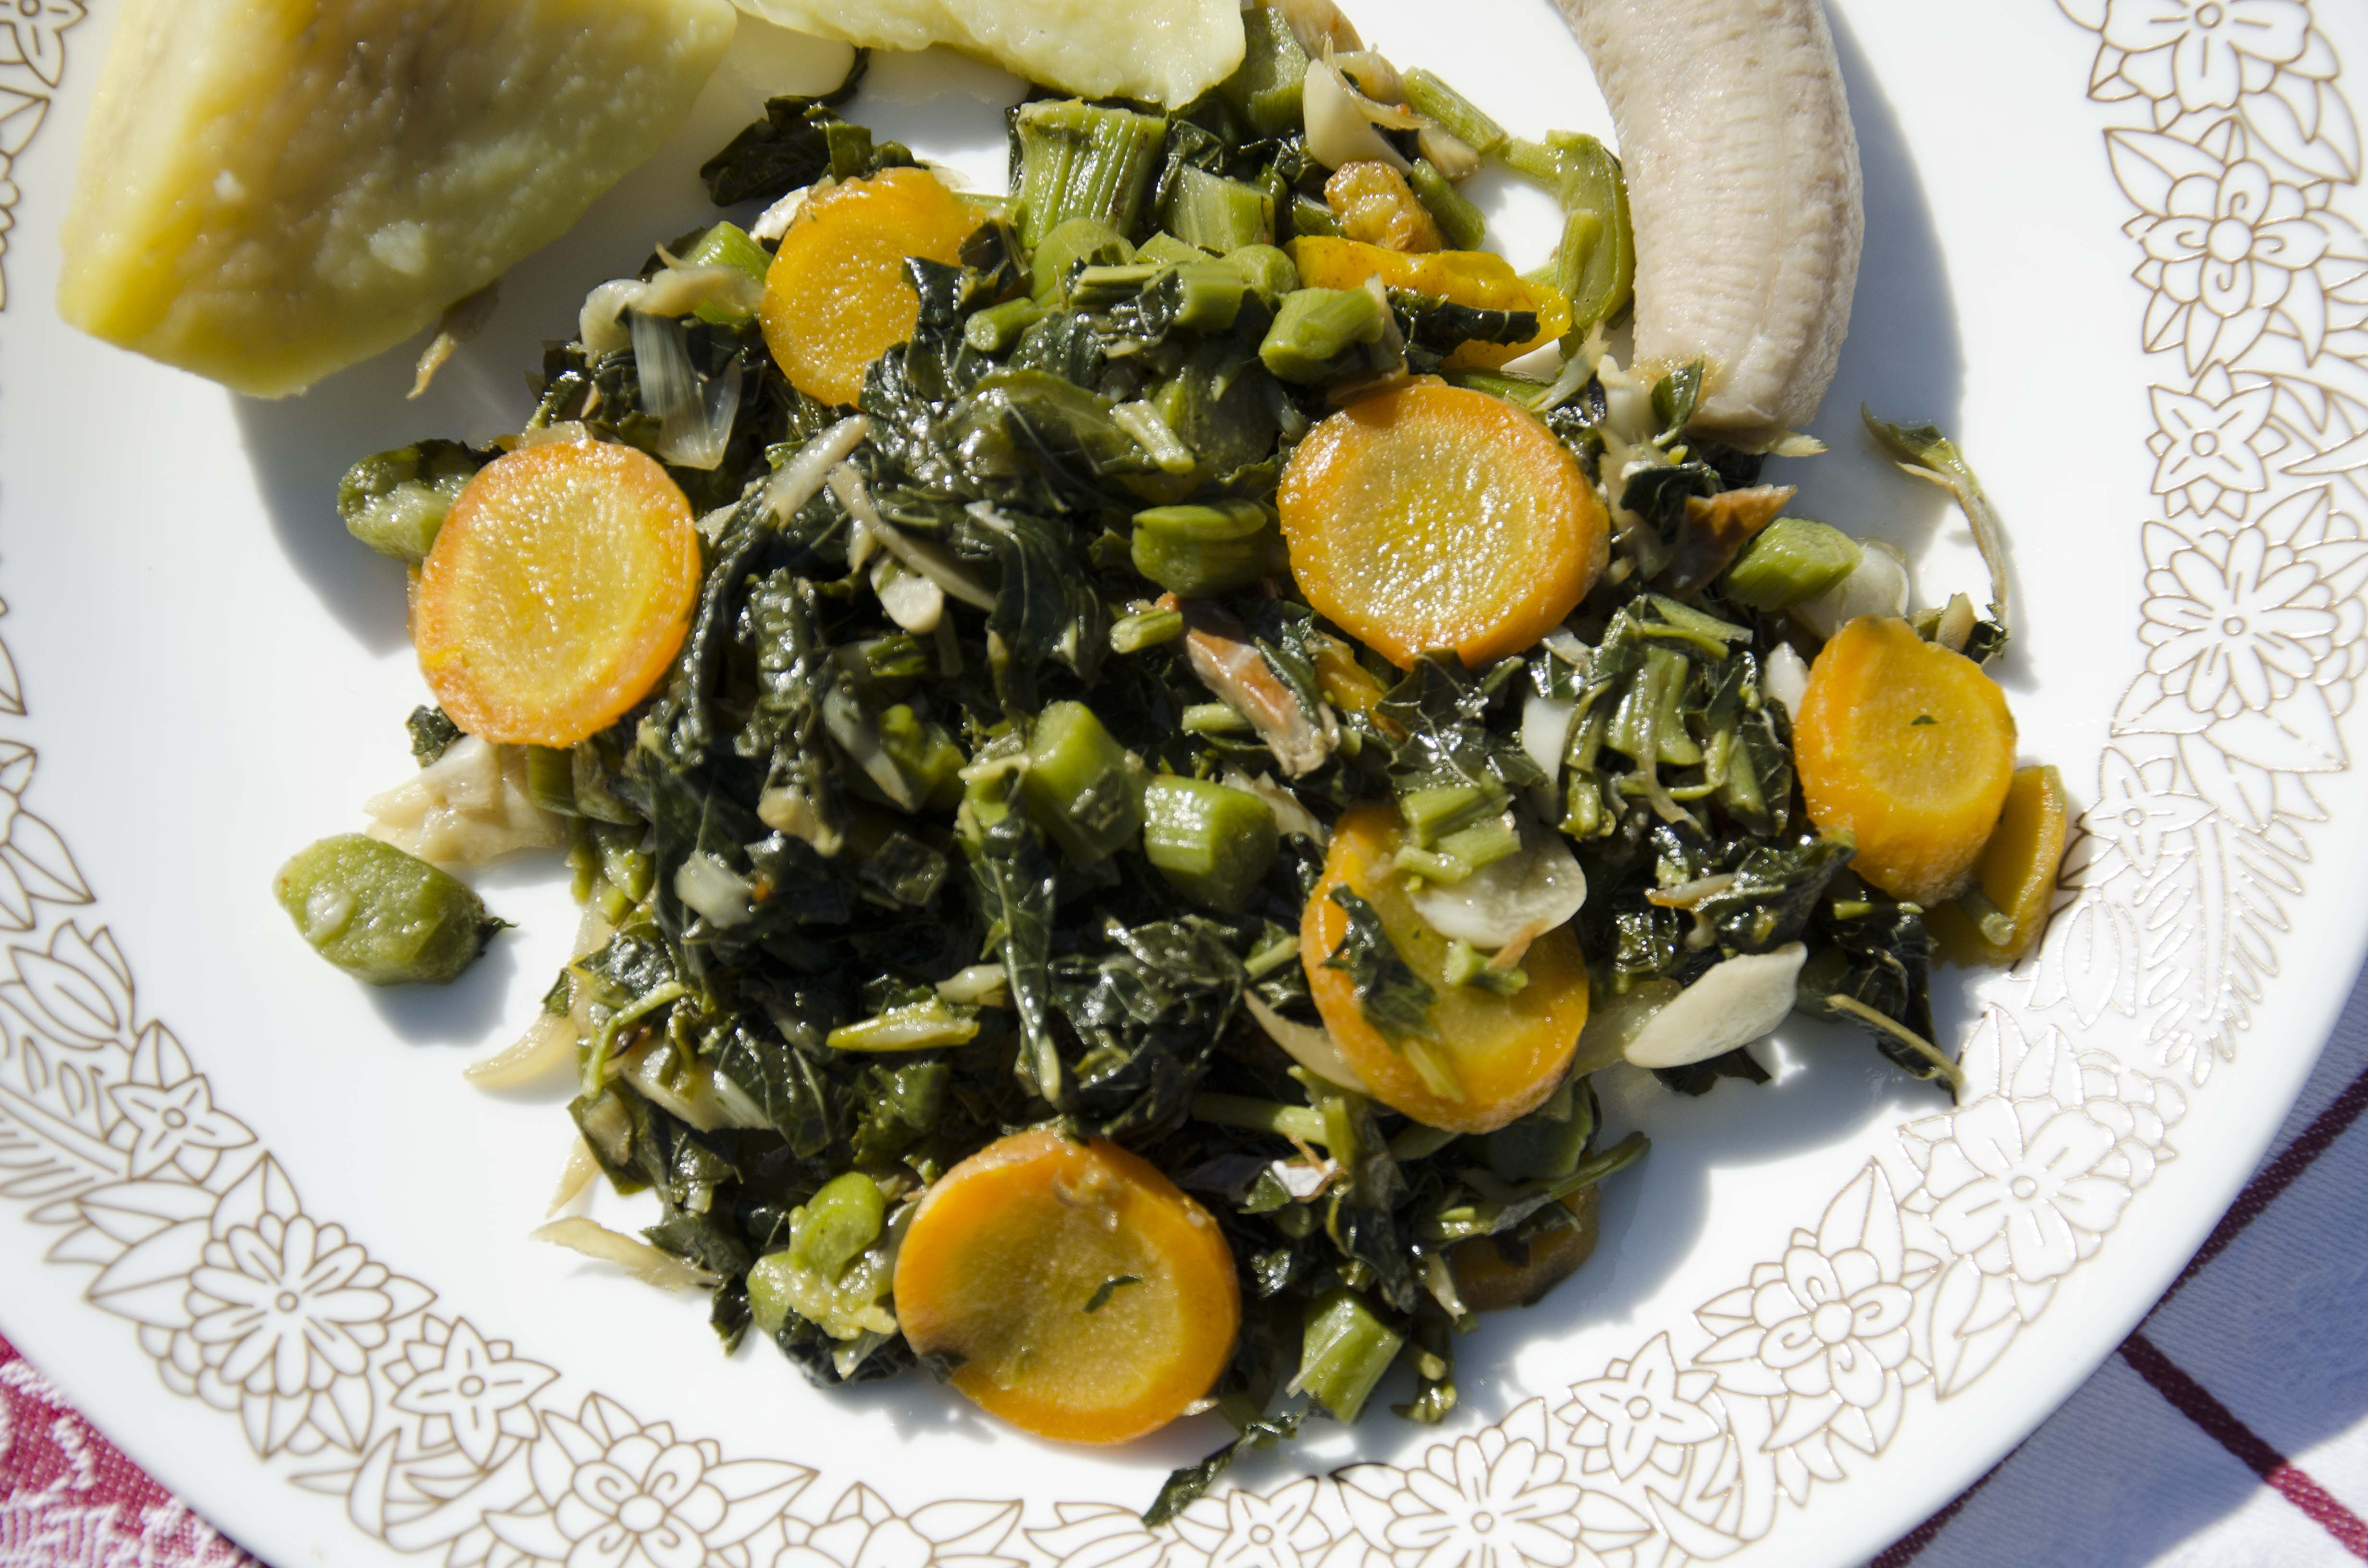 Steamed callaloo and boiled food close up.